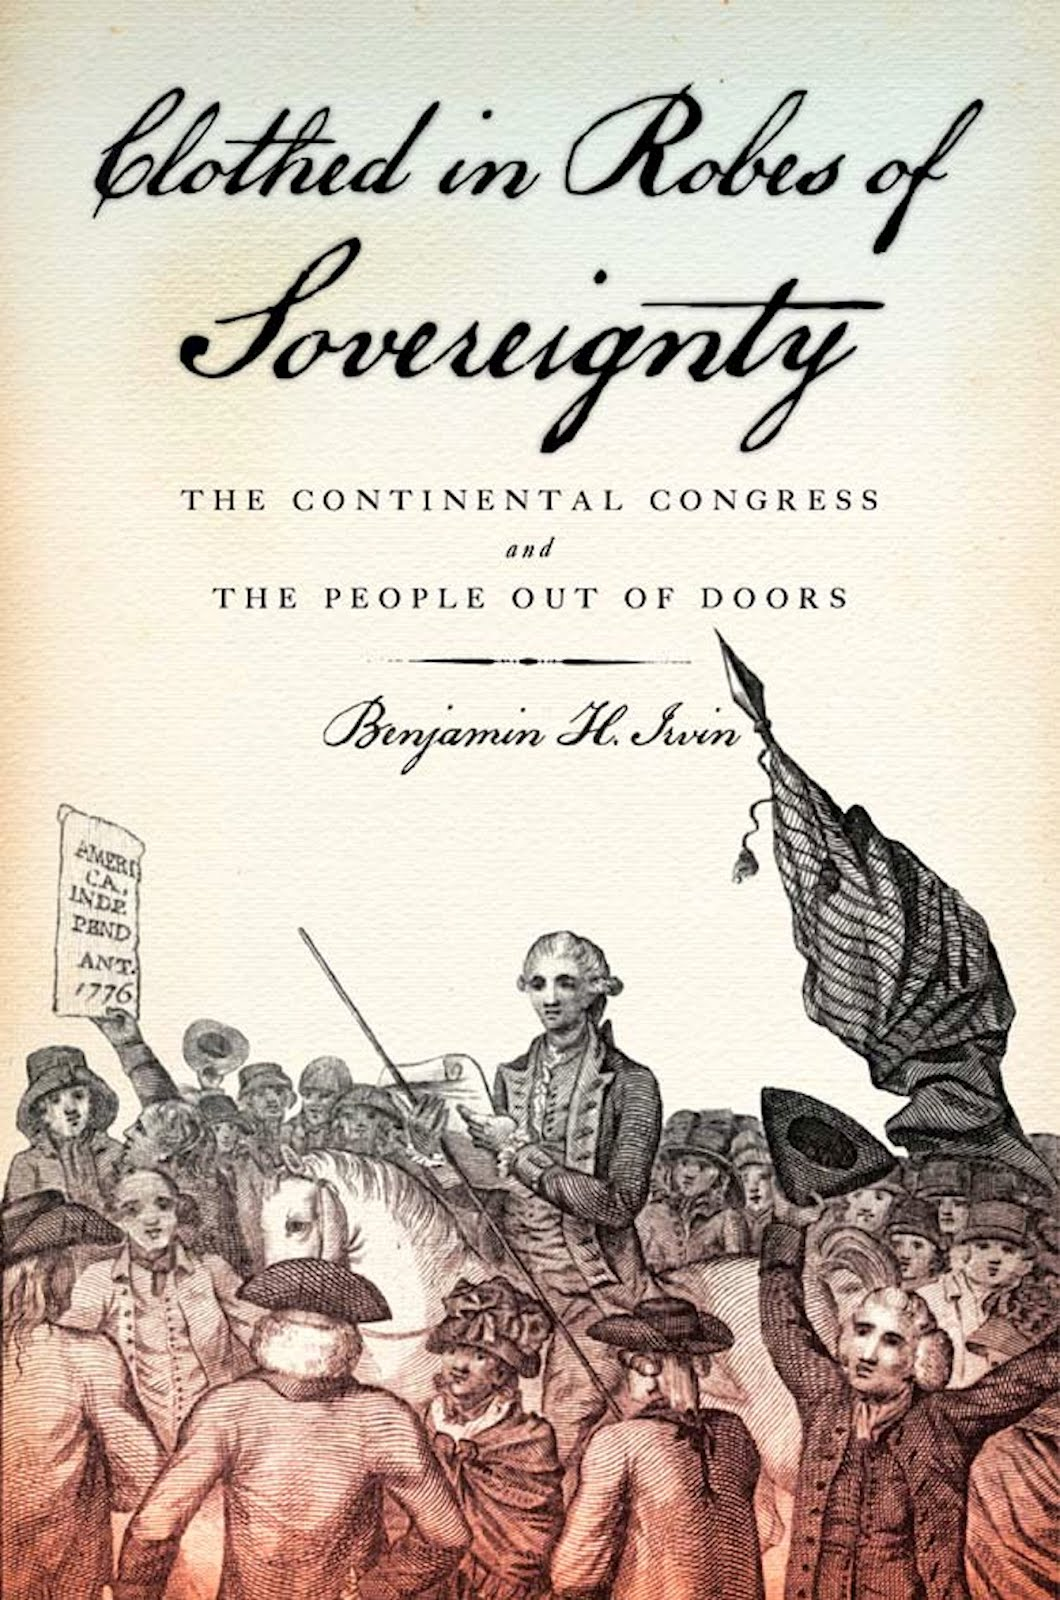 Clothed in Robes of Sovereignty; The Continental Congress and the People Out of